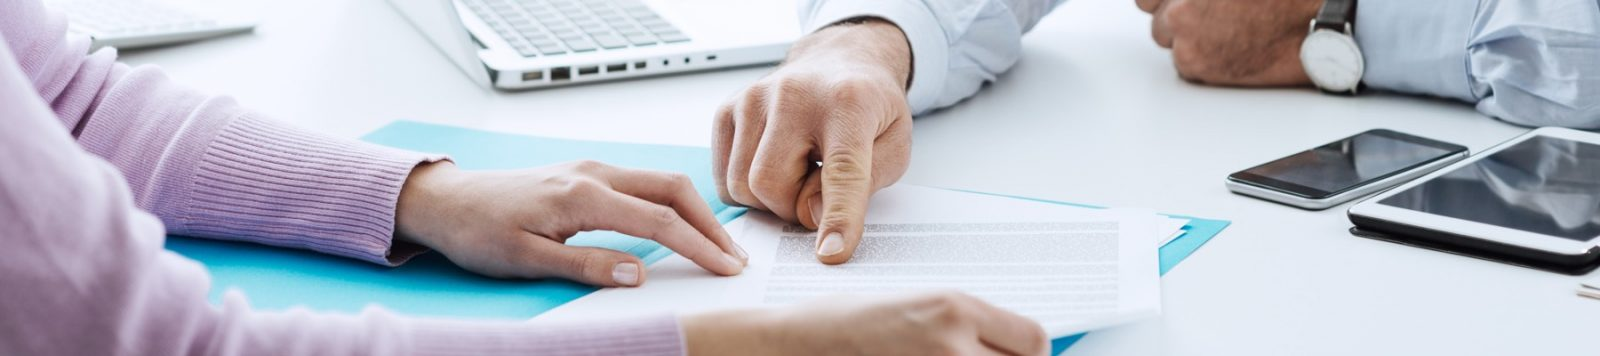 Hands on contract for property investment